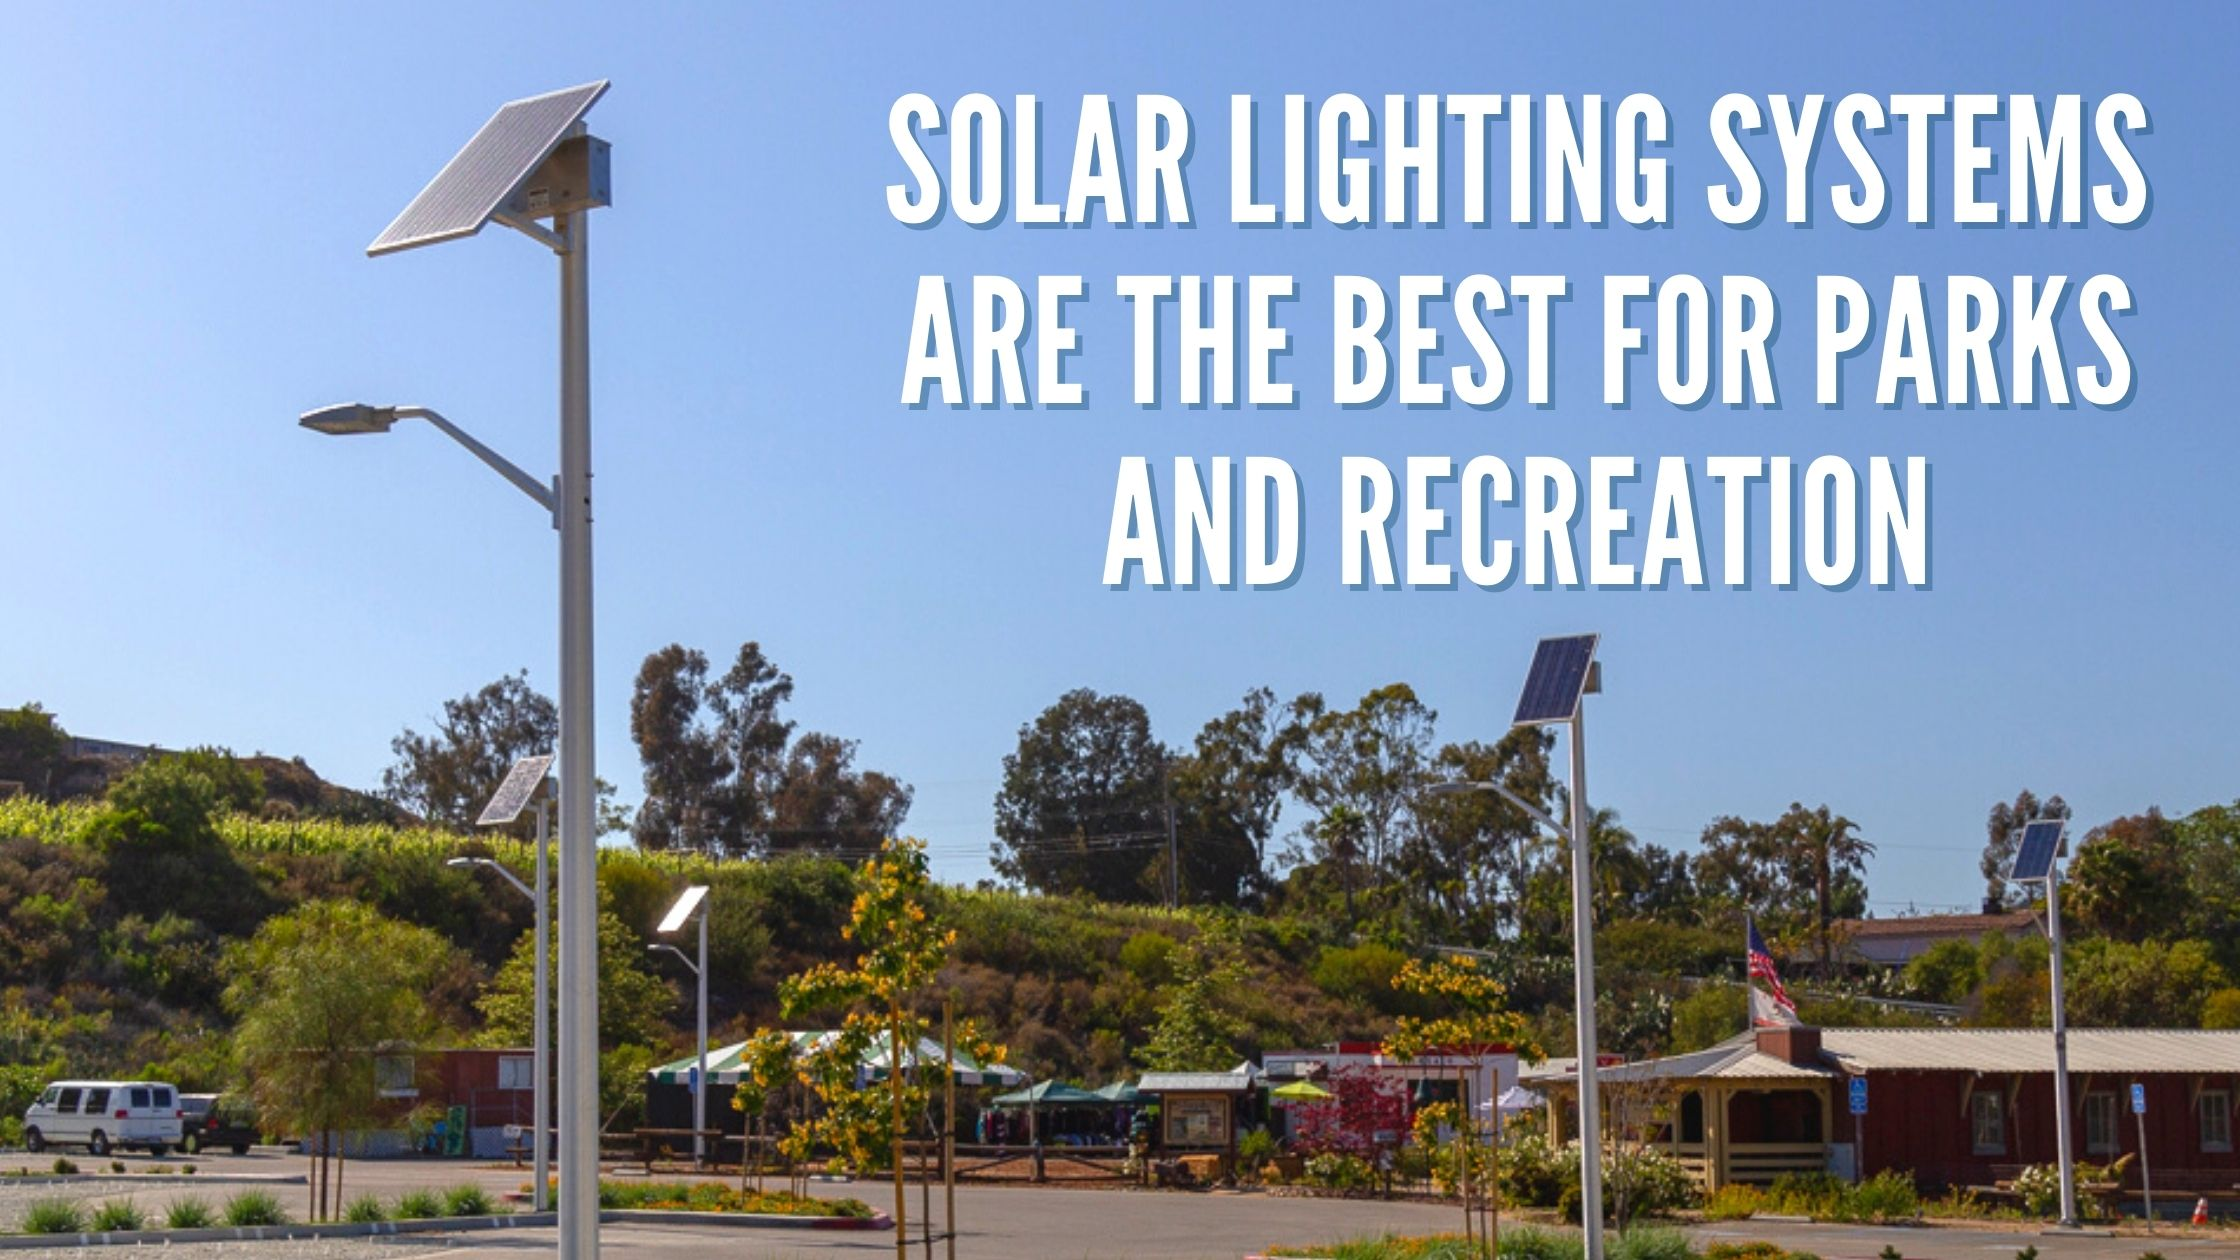 Solar Lighting Systems are the Best for Parks and Recreation